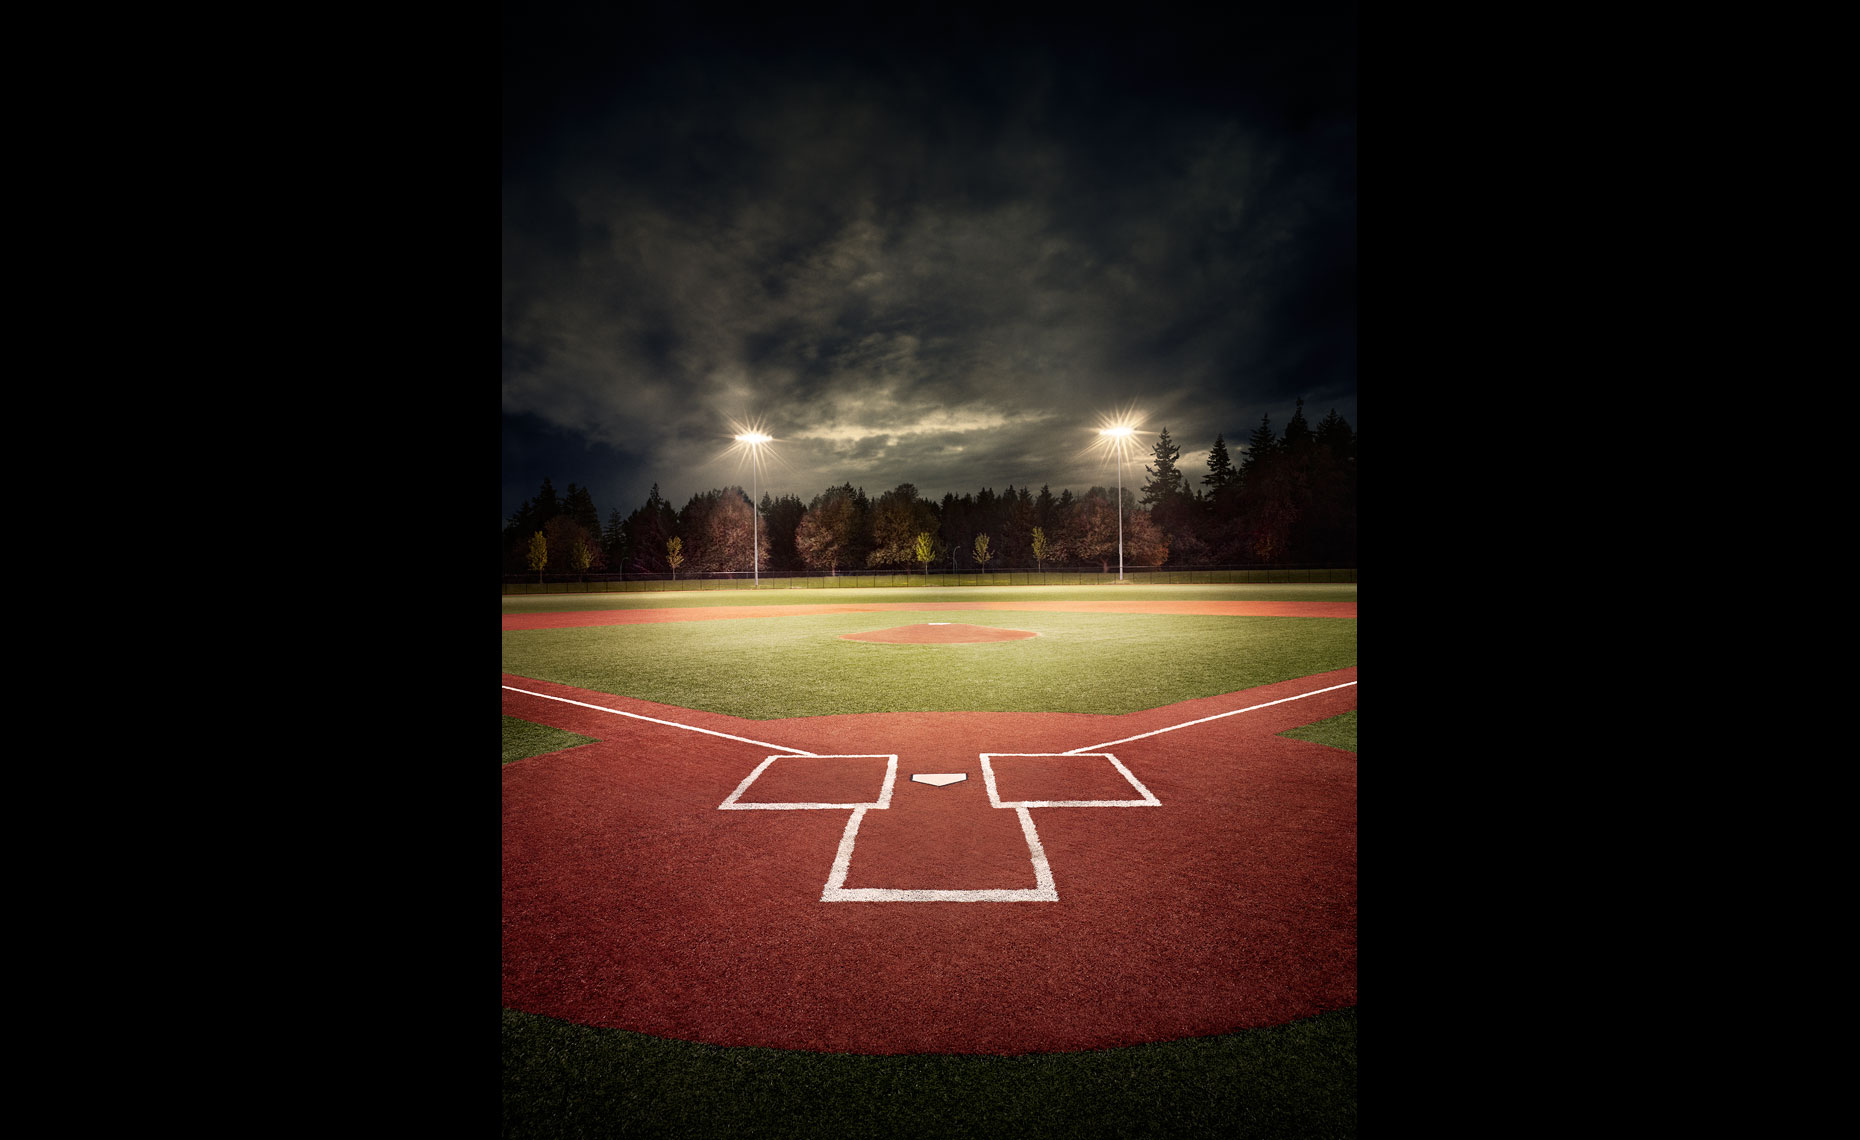 UBC Baseball Field